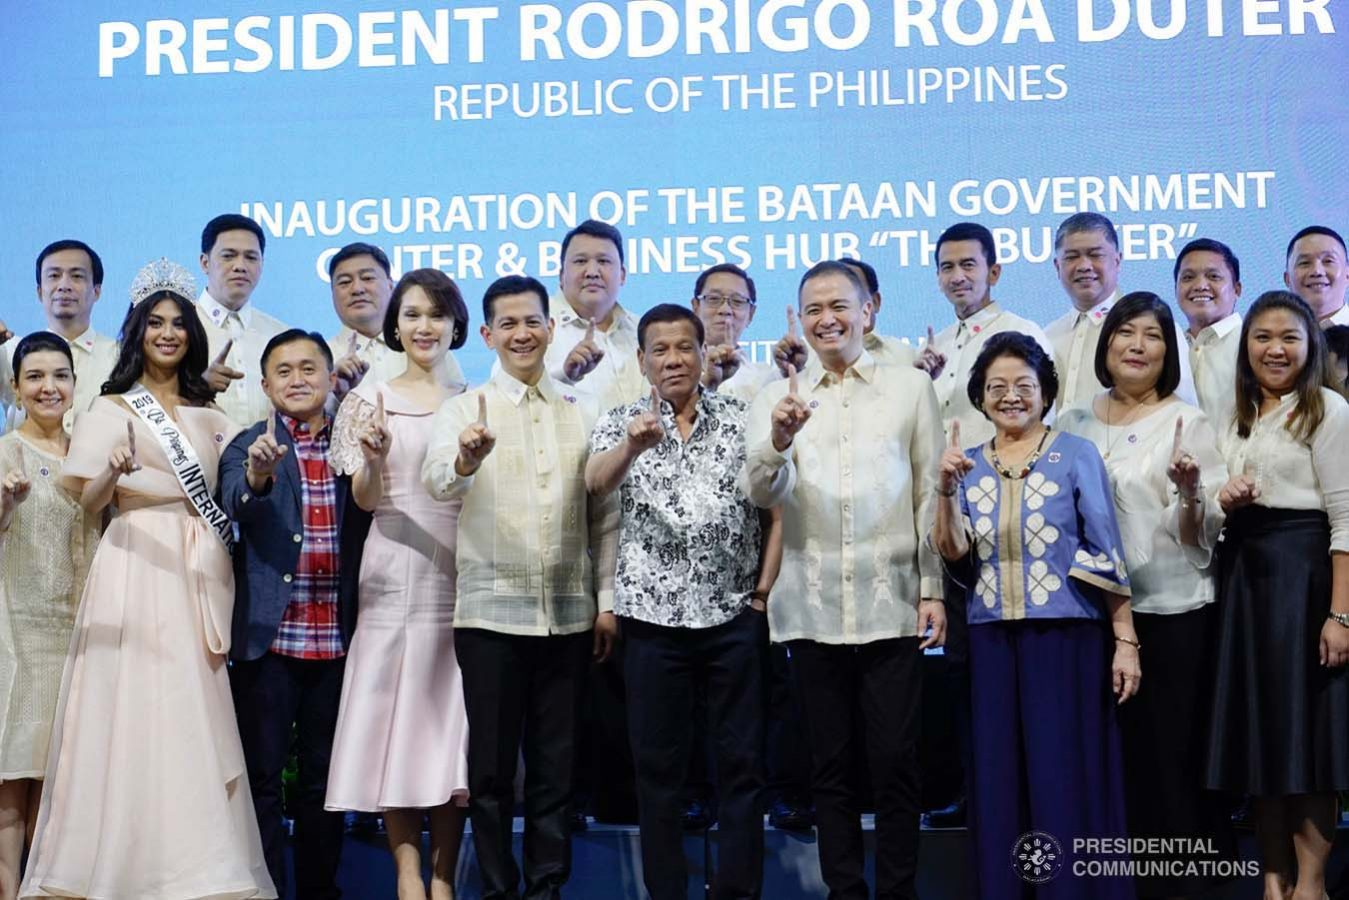 """President Rodrigo Roa Duterte poses for posterity with the guests during the inauguration of the Bataan Government Center and Business Hub """"The Bunker"""" in Balanga City, Bataan on September 12, 2019. KING RODRIGUEZ/PRESIDENTIAL PHOTO"""